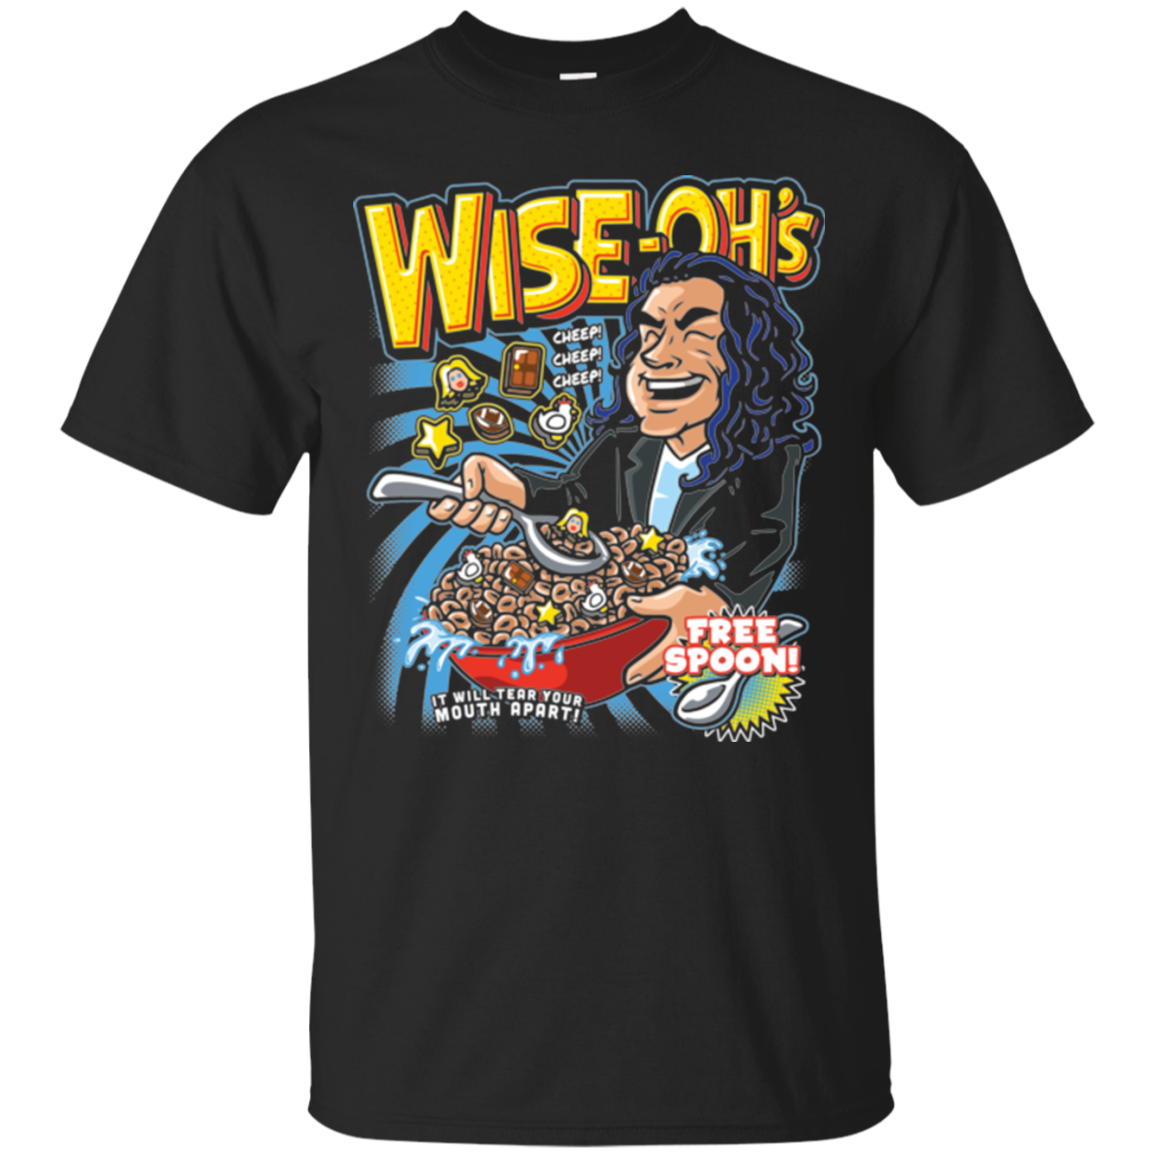 Wise-Oh's T-Shirt